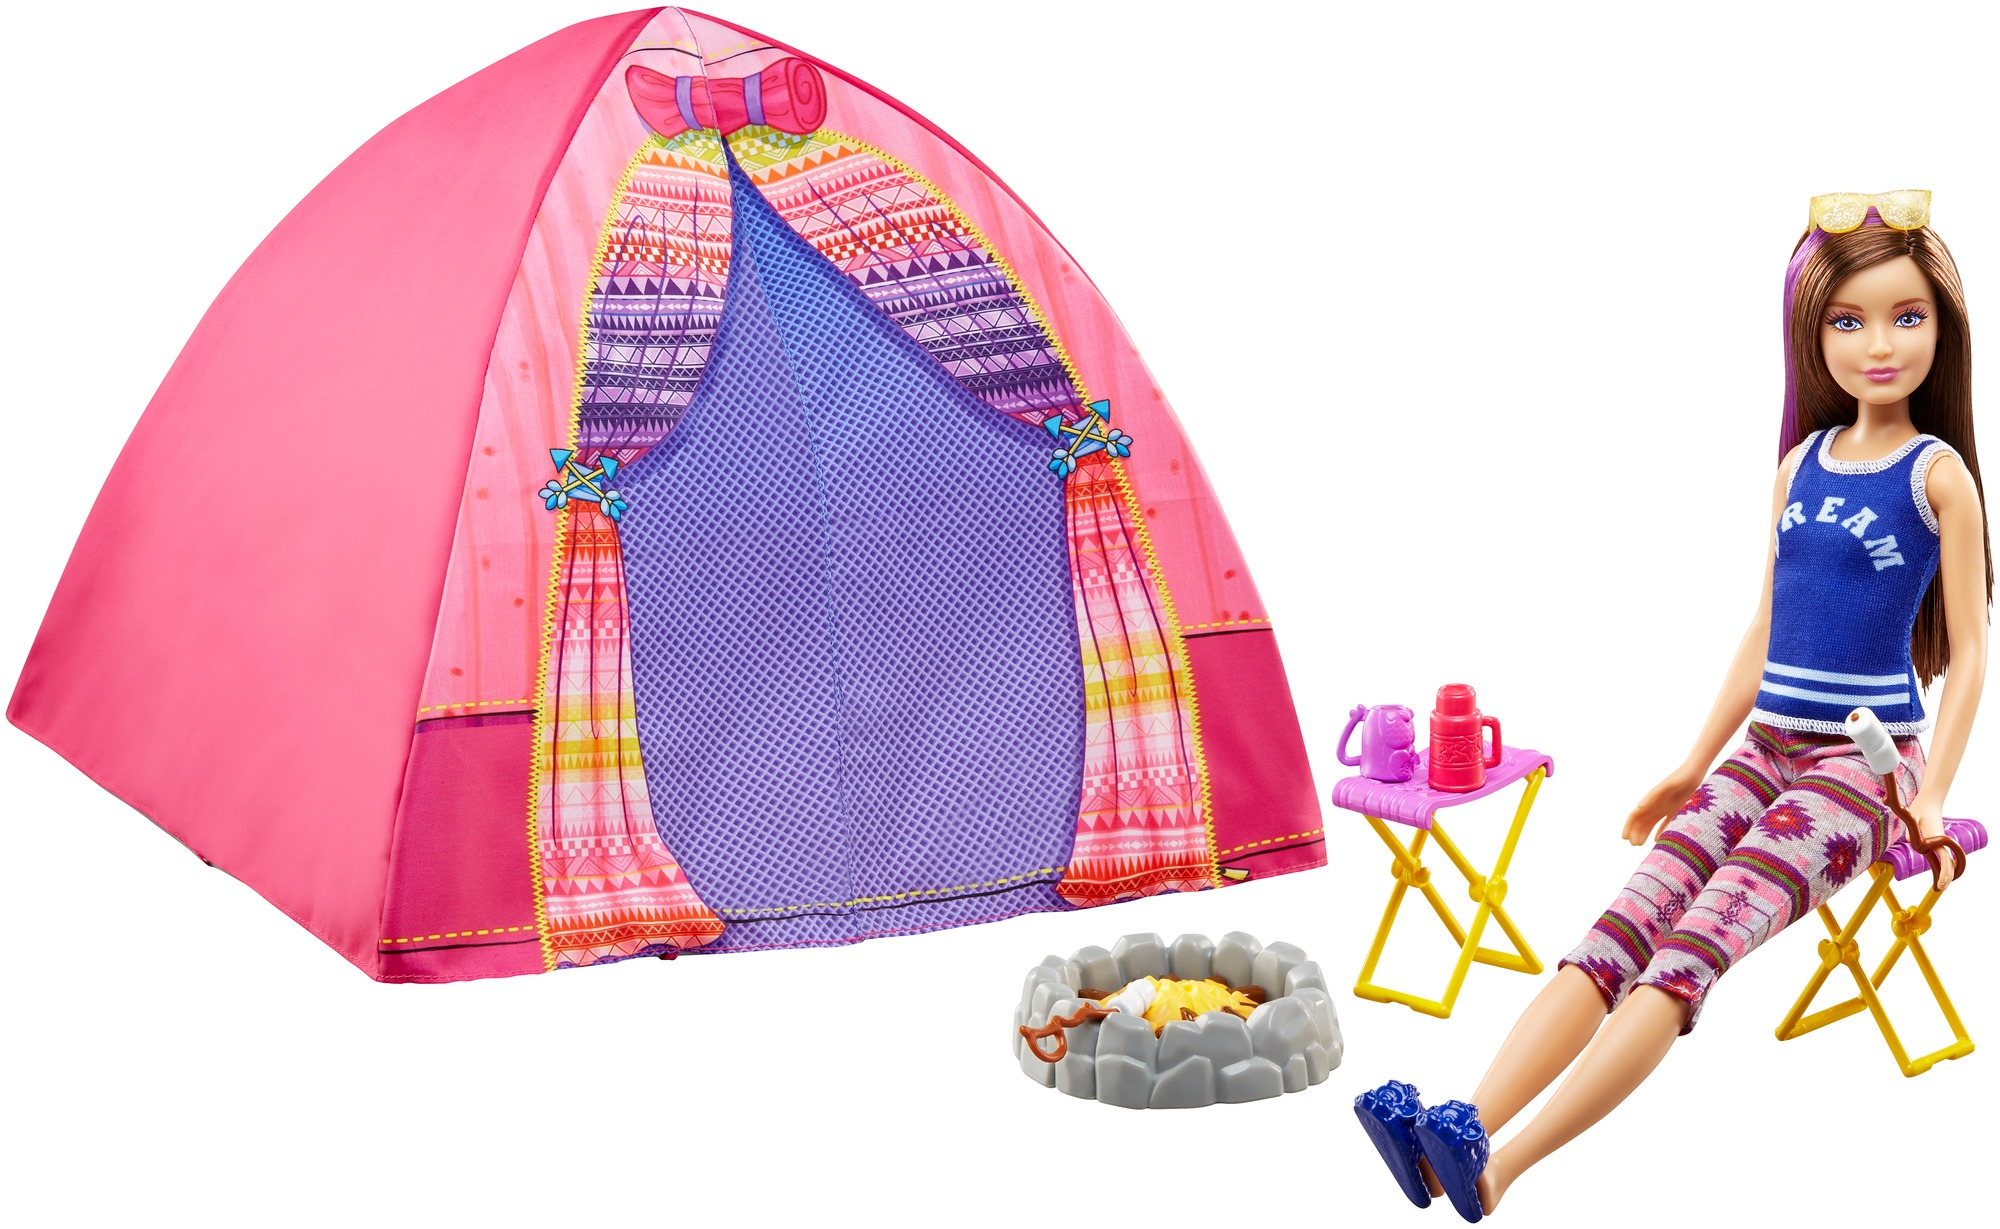 Barbie C&ing Fun Skipper Doll and Tent Playset  sc 1 st  Walmart & Barbie Camping Fun Skipper Doll and Tent Playset - Walmart.com